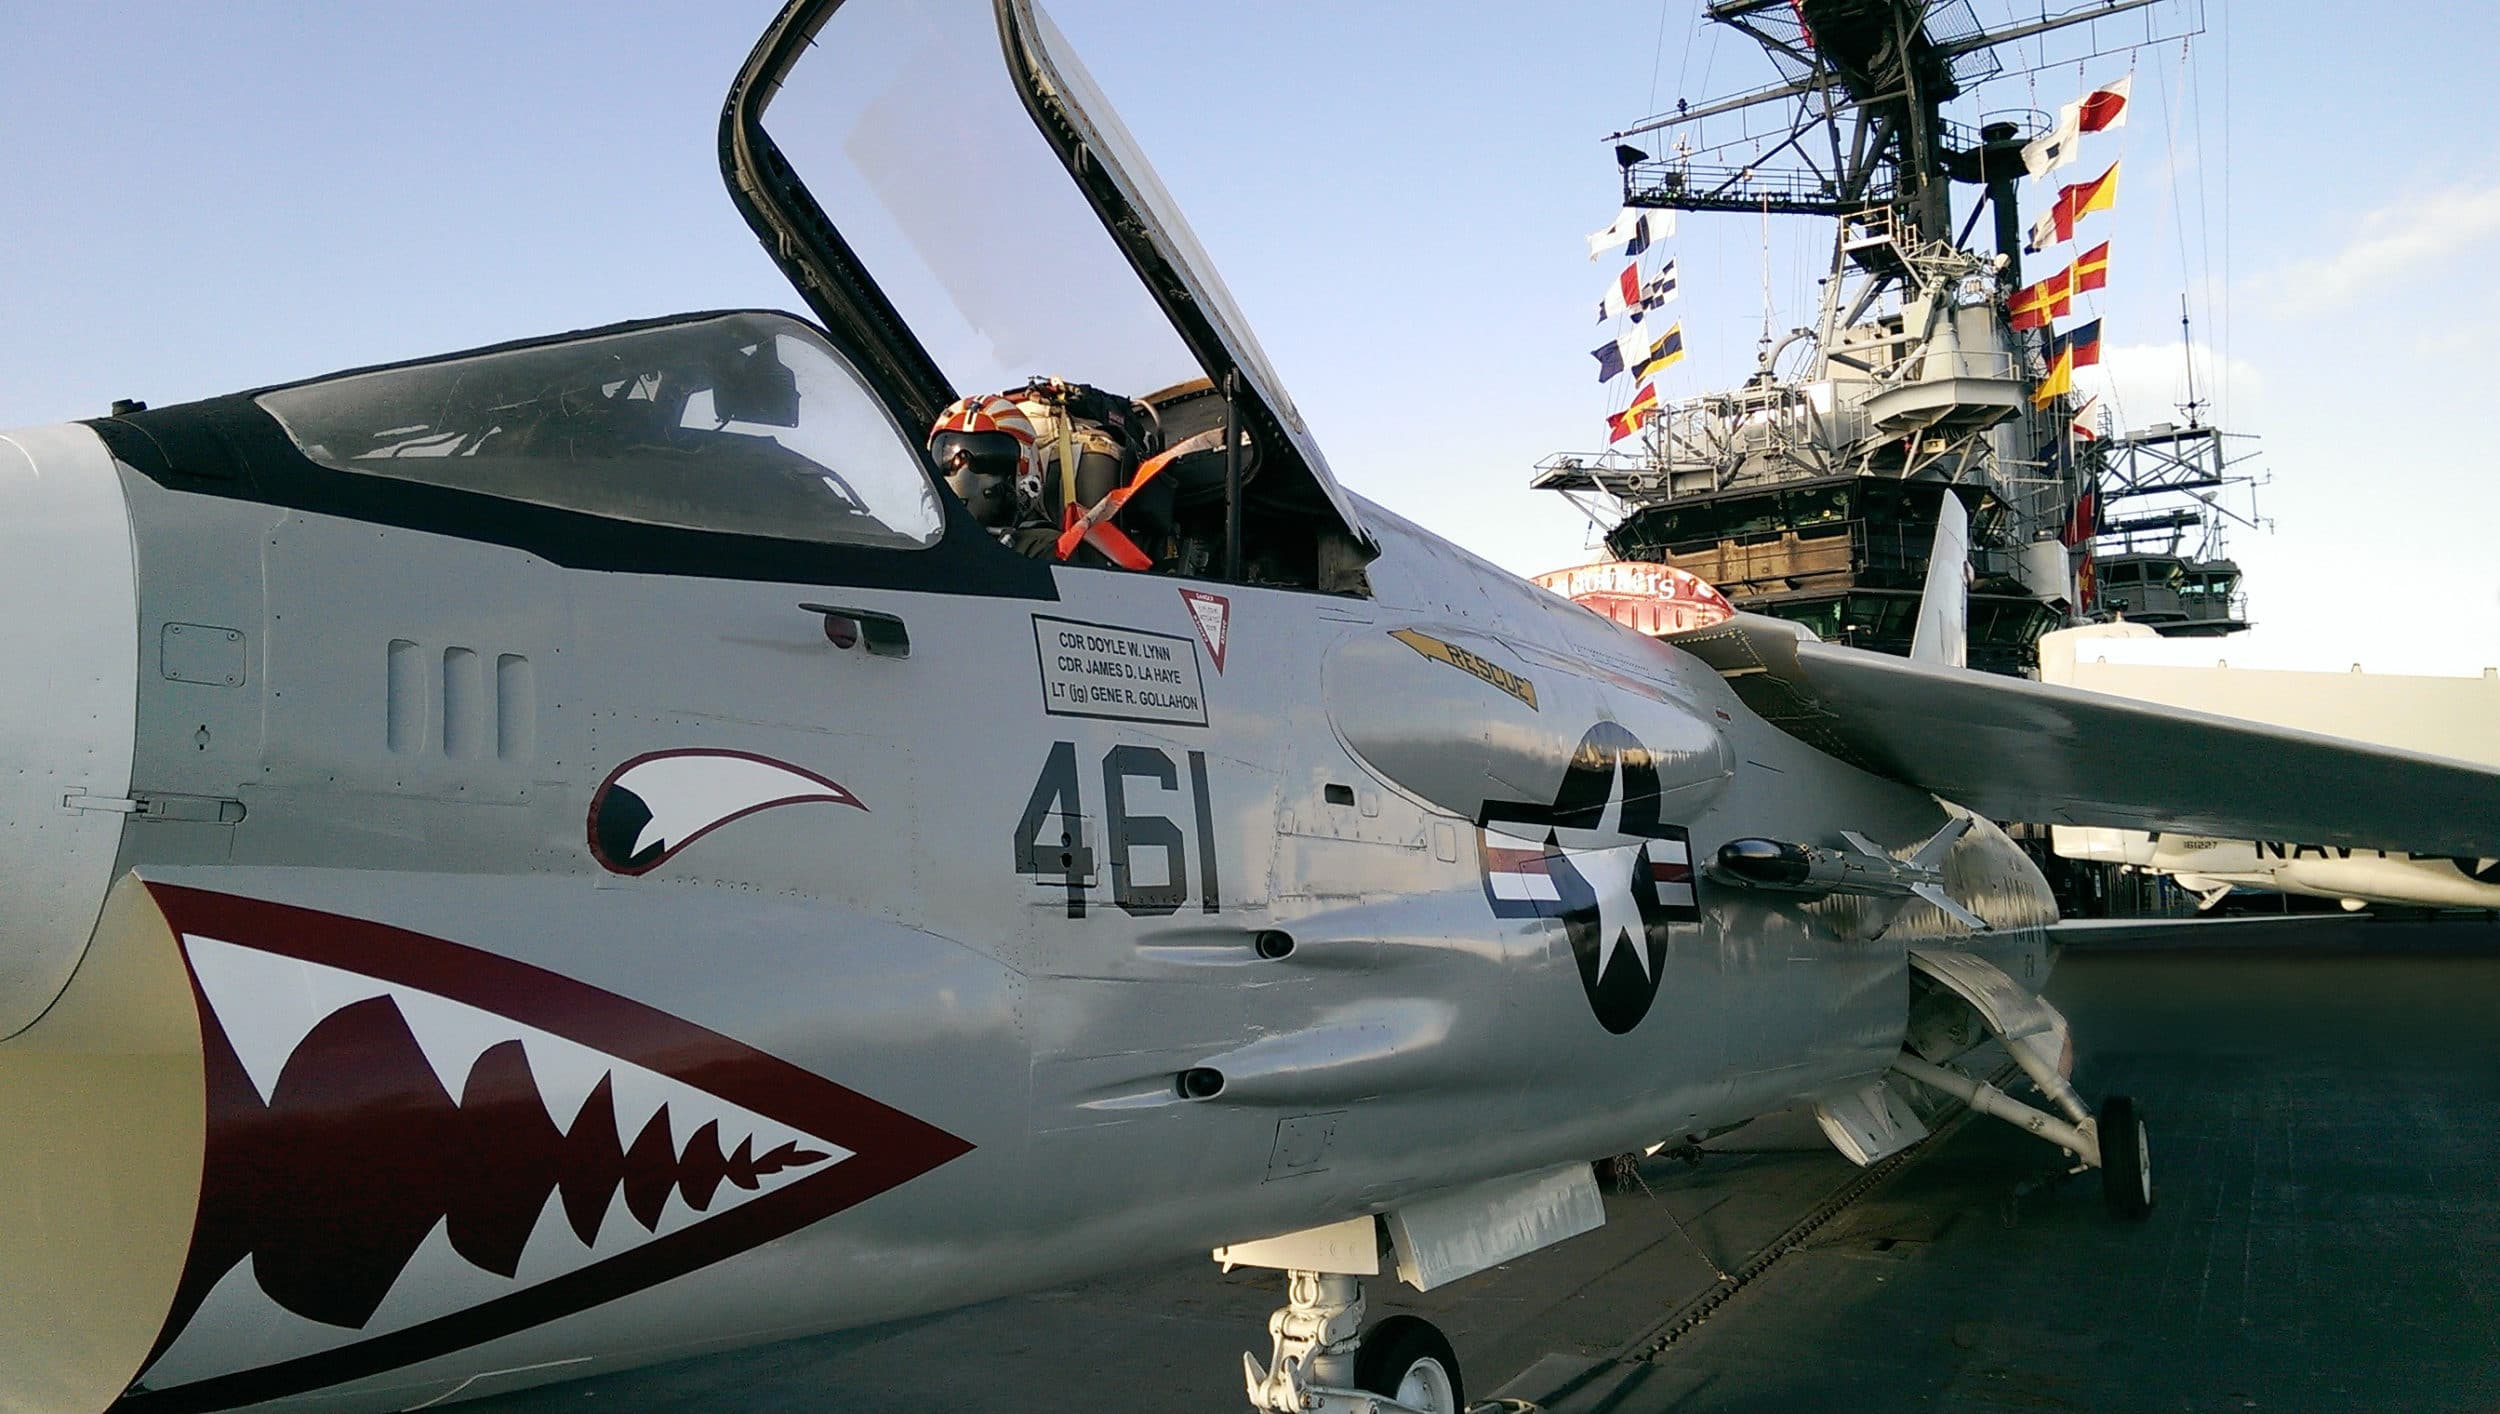 Best San Diego Museums: USS Midway